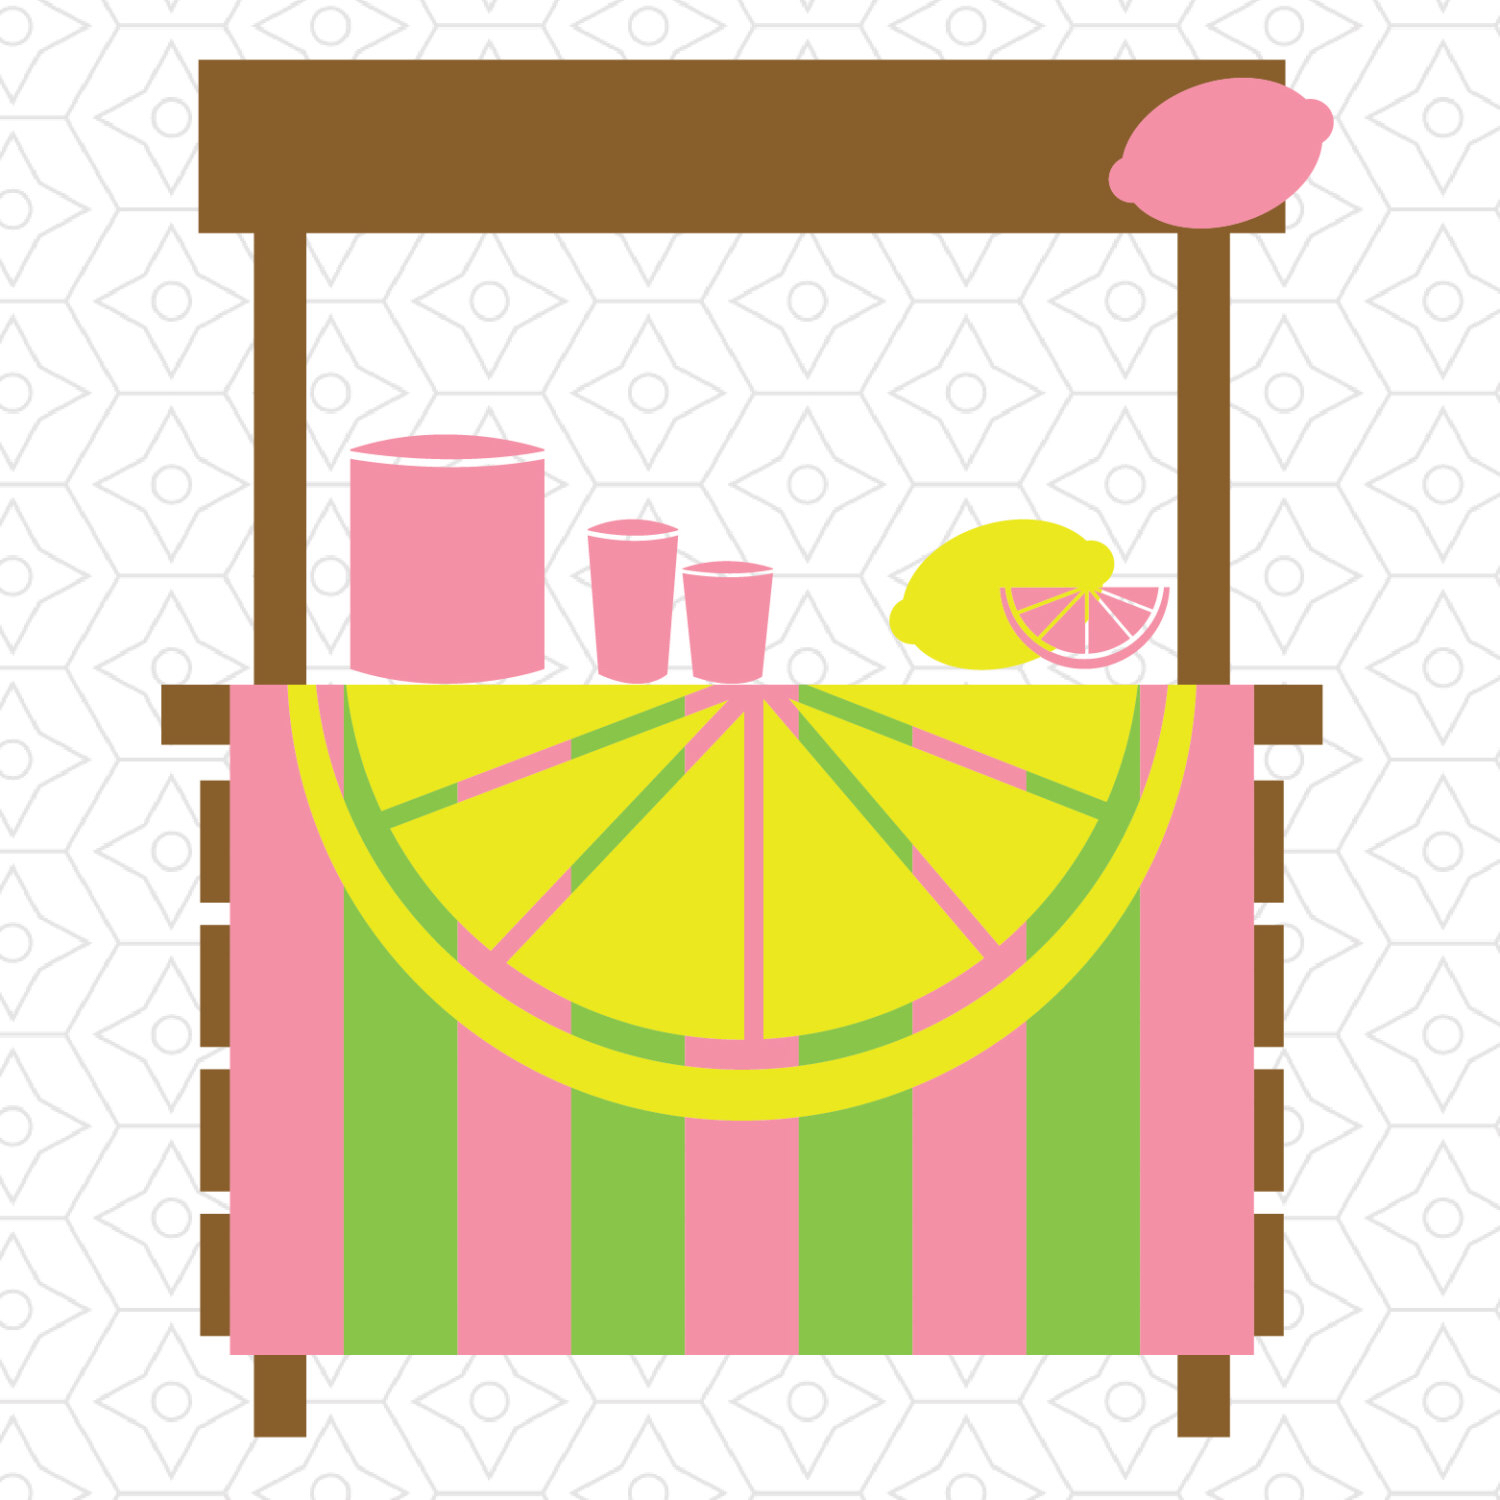 1500x1500 Lemonade Stand Decal Design, Svg, Dxf Vector Files For Use